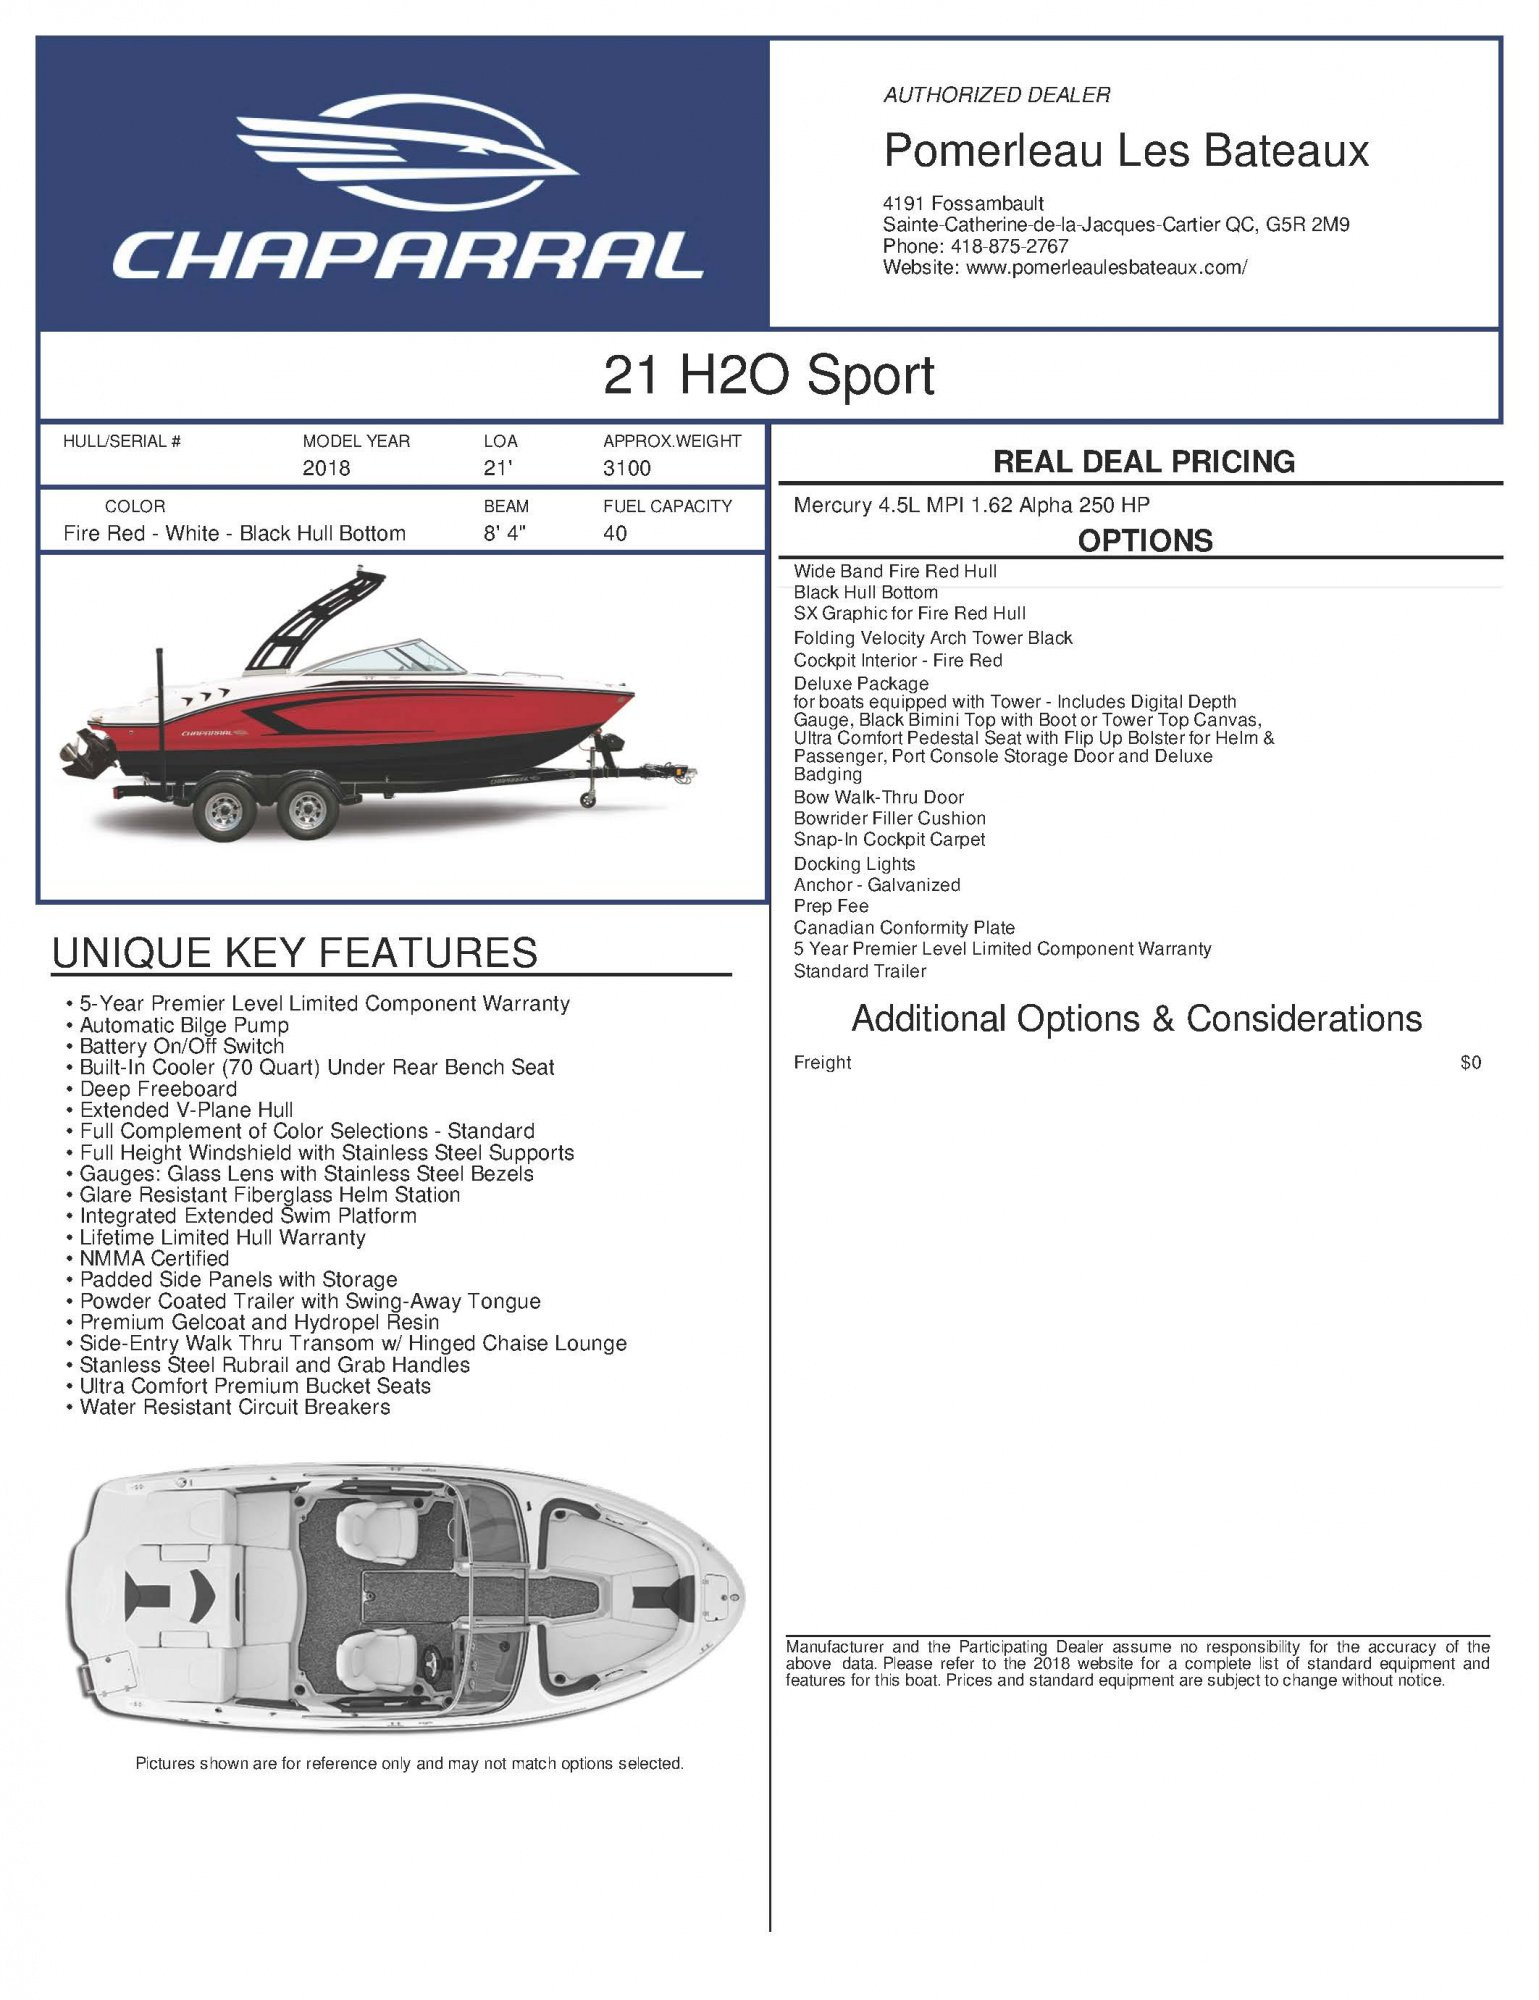 Chaparral H2O 21 - Chaparral-Boats-2018-21-Sport-Window-Sticker-247721